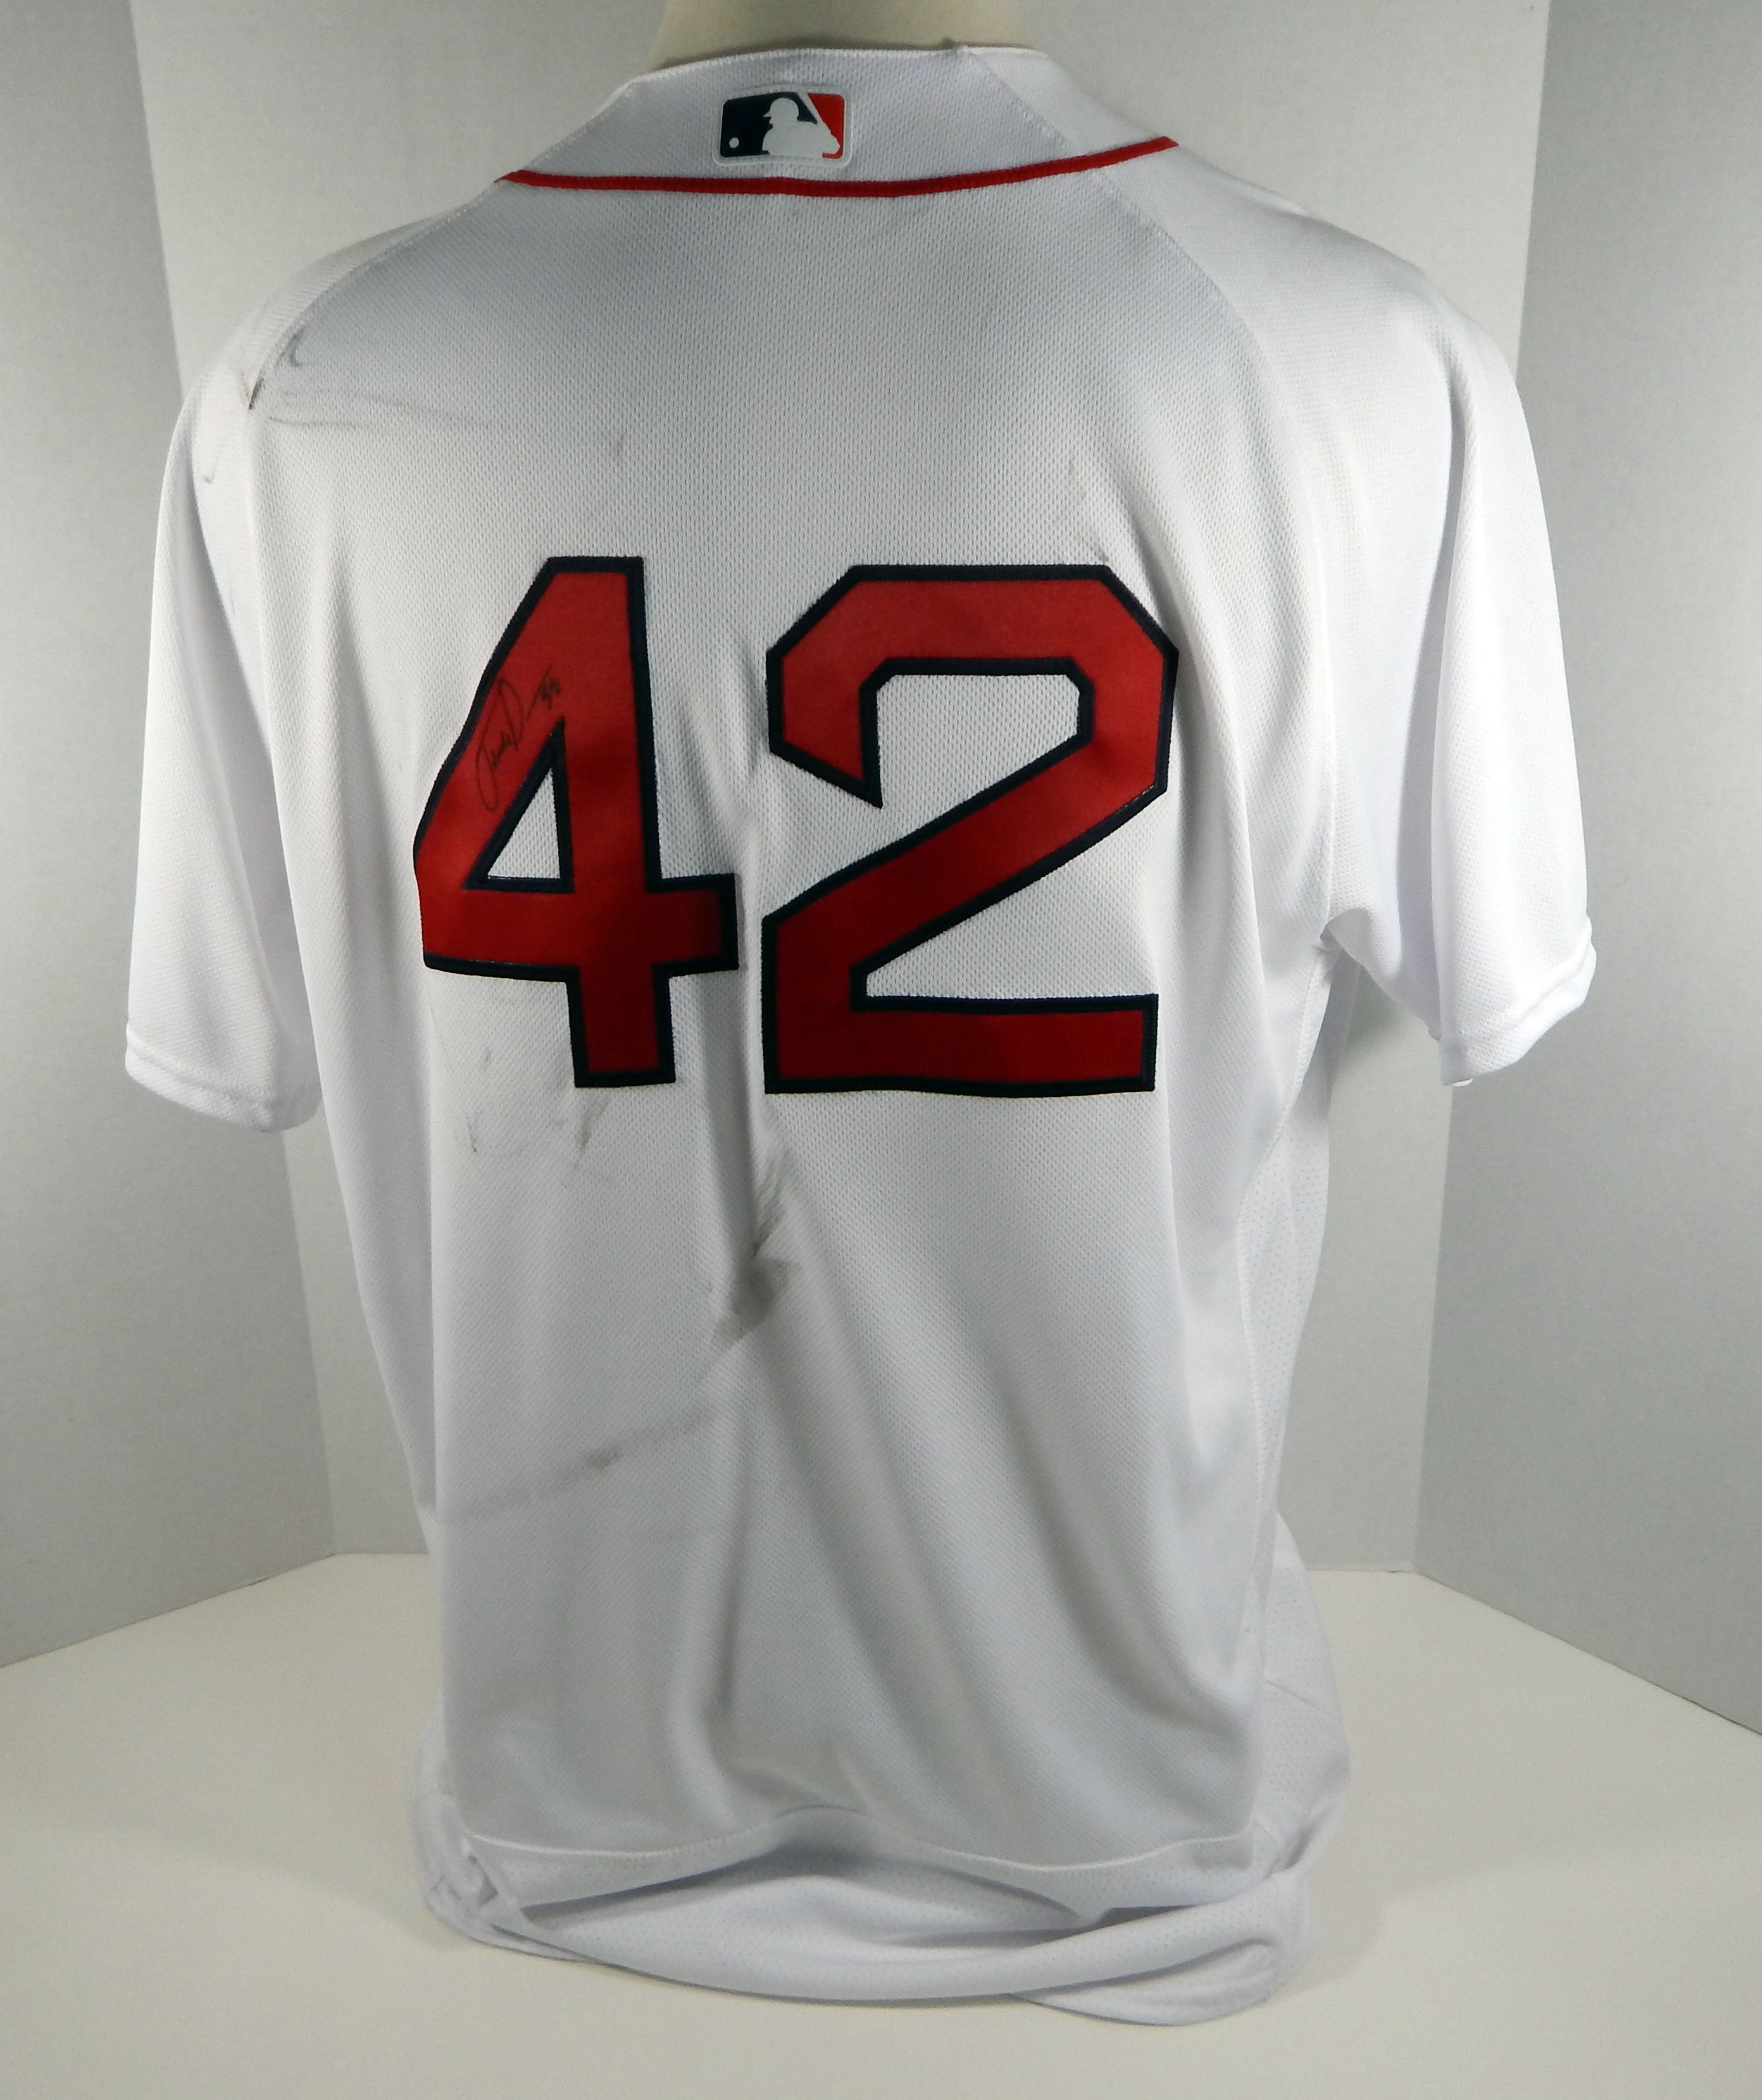 new styles 3fffb 3605d Details about 2017 Boston Red Sox Fernando Abad #42 Game Used White Jackie  Robinson Jersey